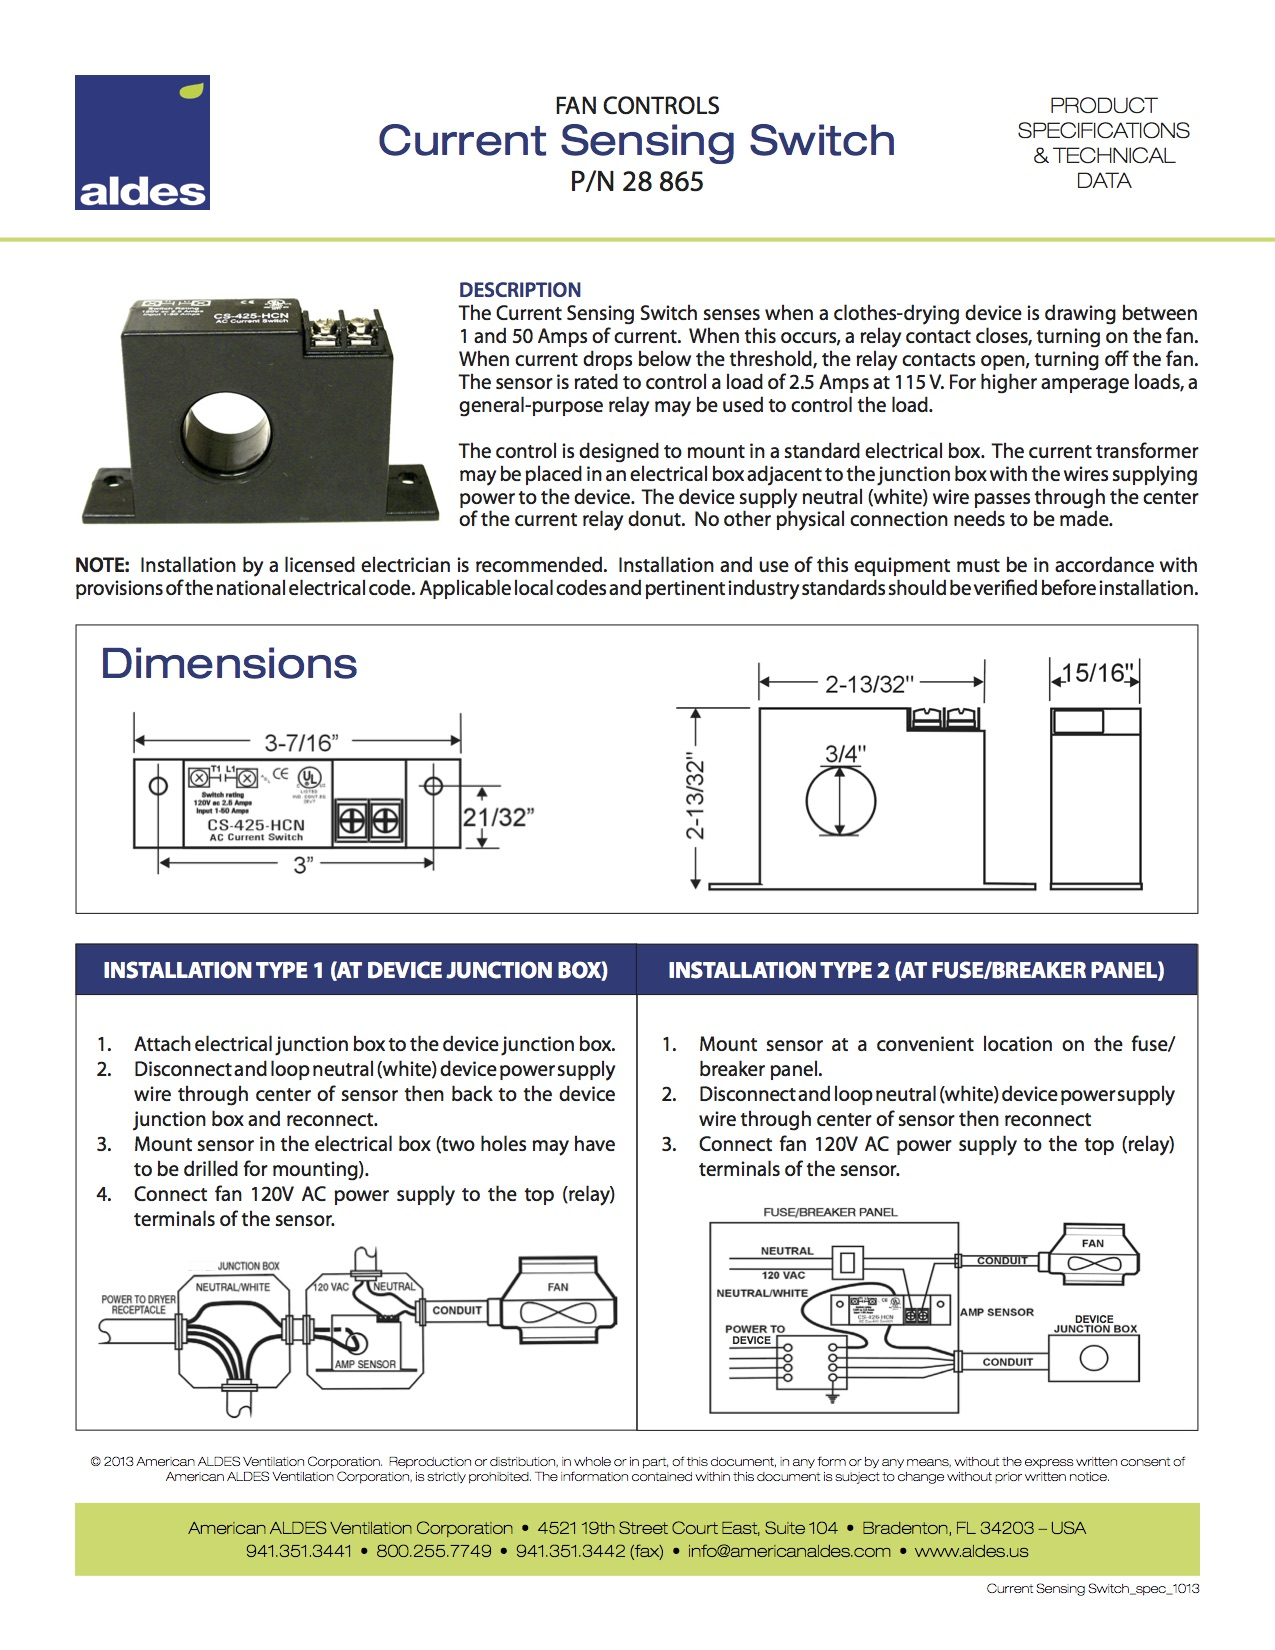 Current Sensing Switch American Aldes Ventilation Corporation With Diagram 2 Wiring Box In Powers Buy Now